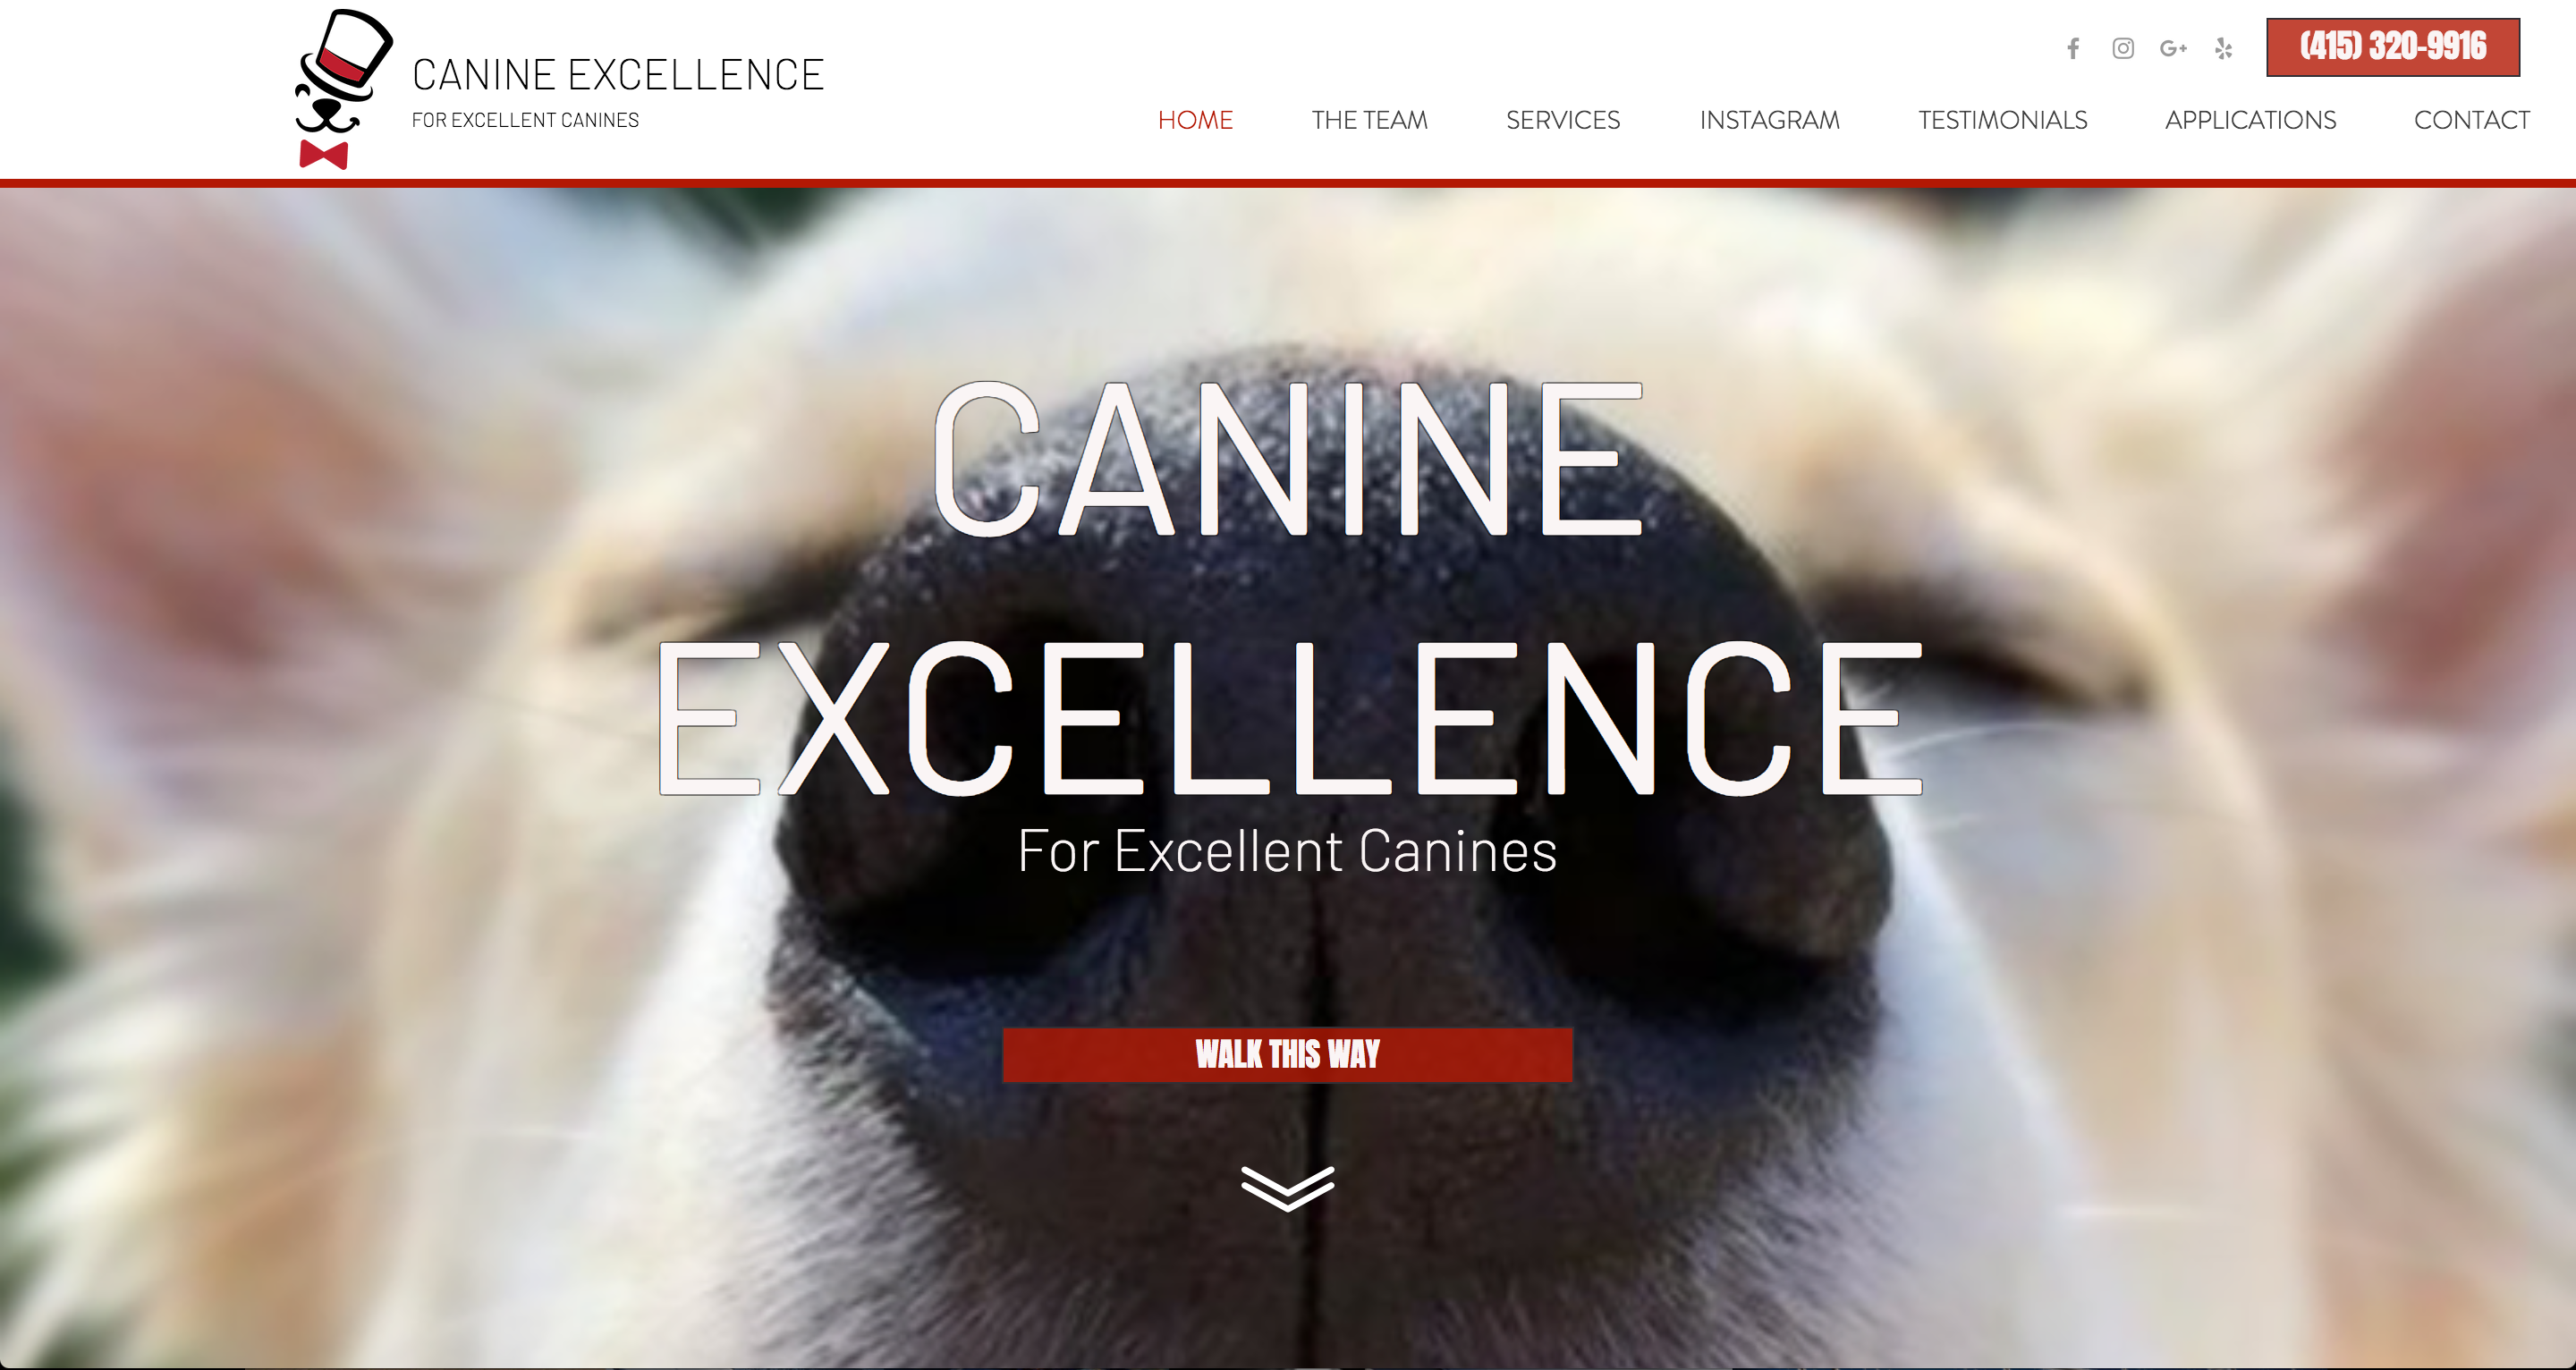 Canine Excellence